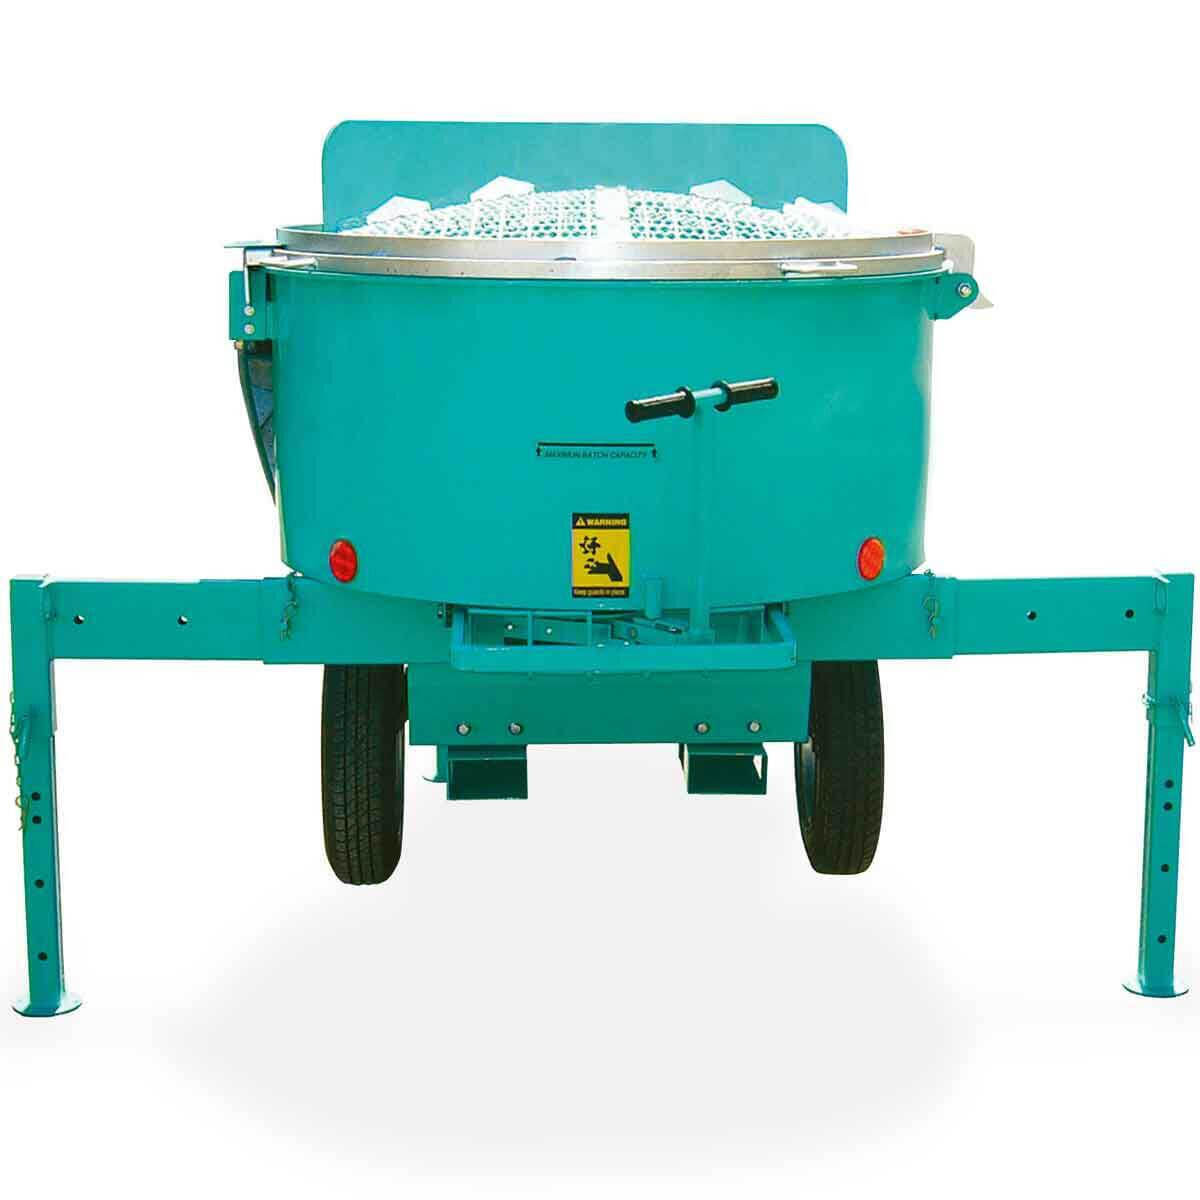 imer vertical shaft mixers are great to handle dry pack, grouts, thin sets, stuccos, self-leveling materials mortar.